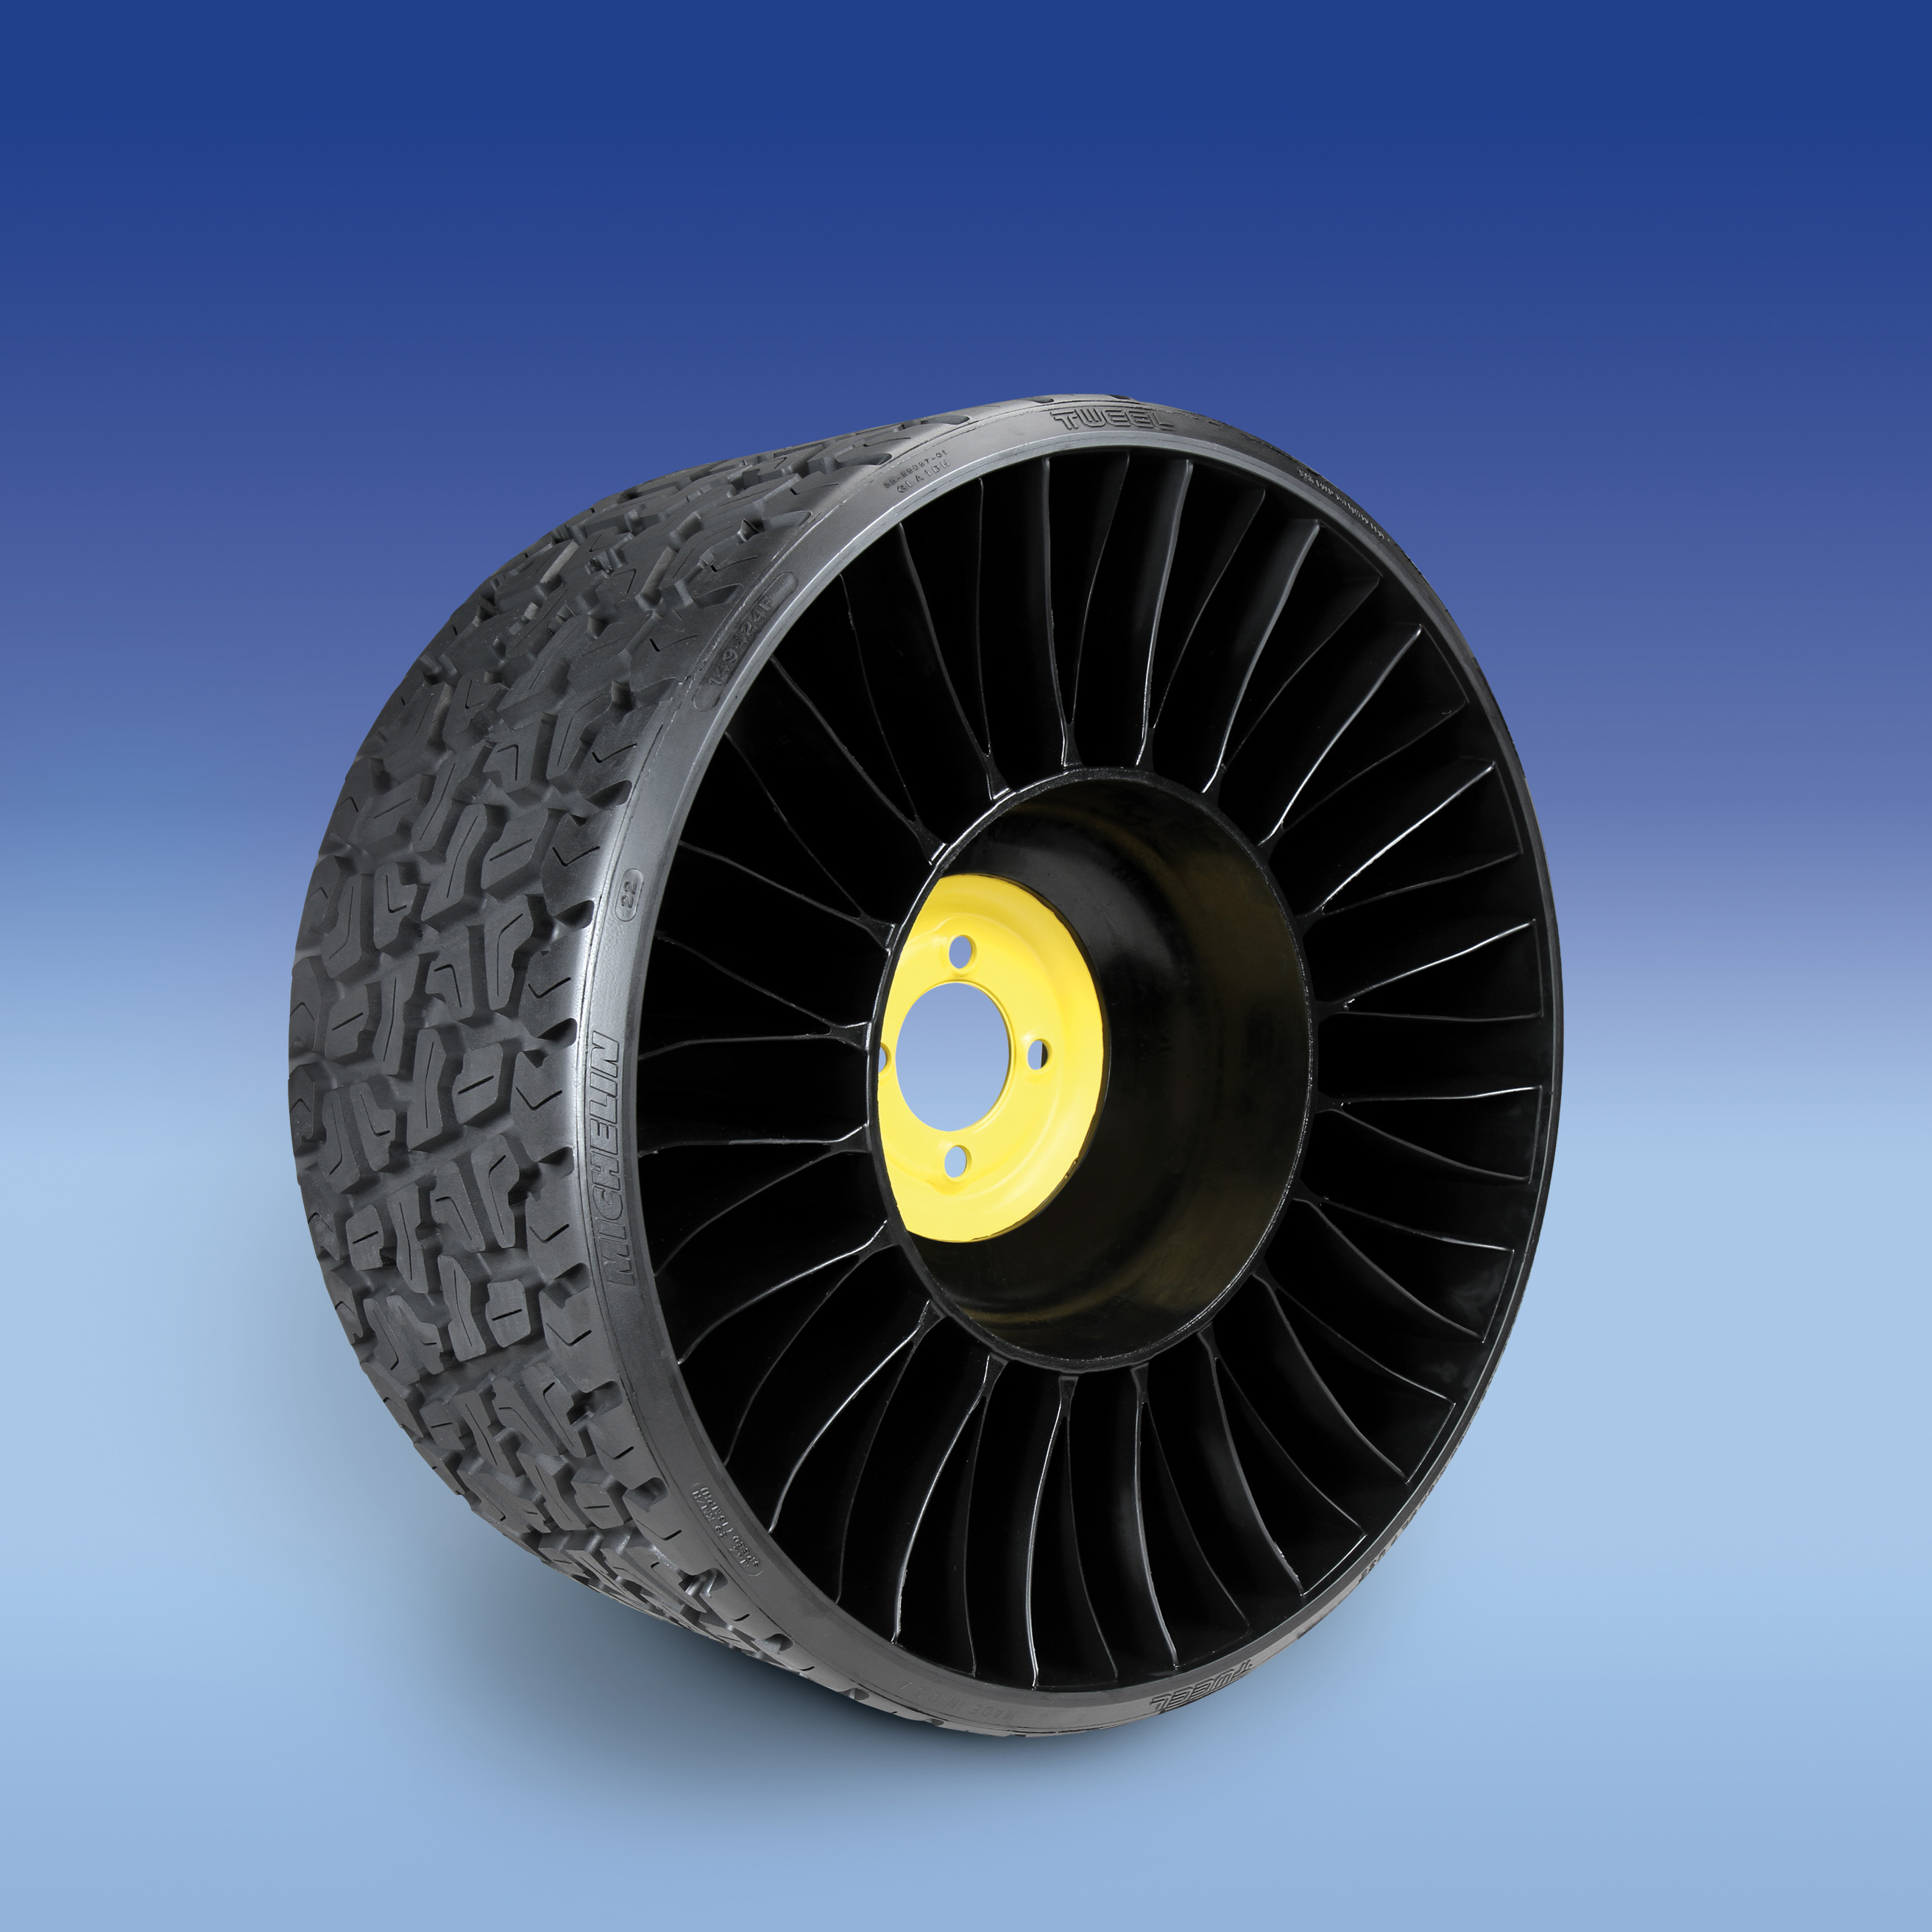 Michelin to provide airless radial tire for john deere ztrak 900 series line up